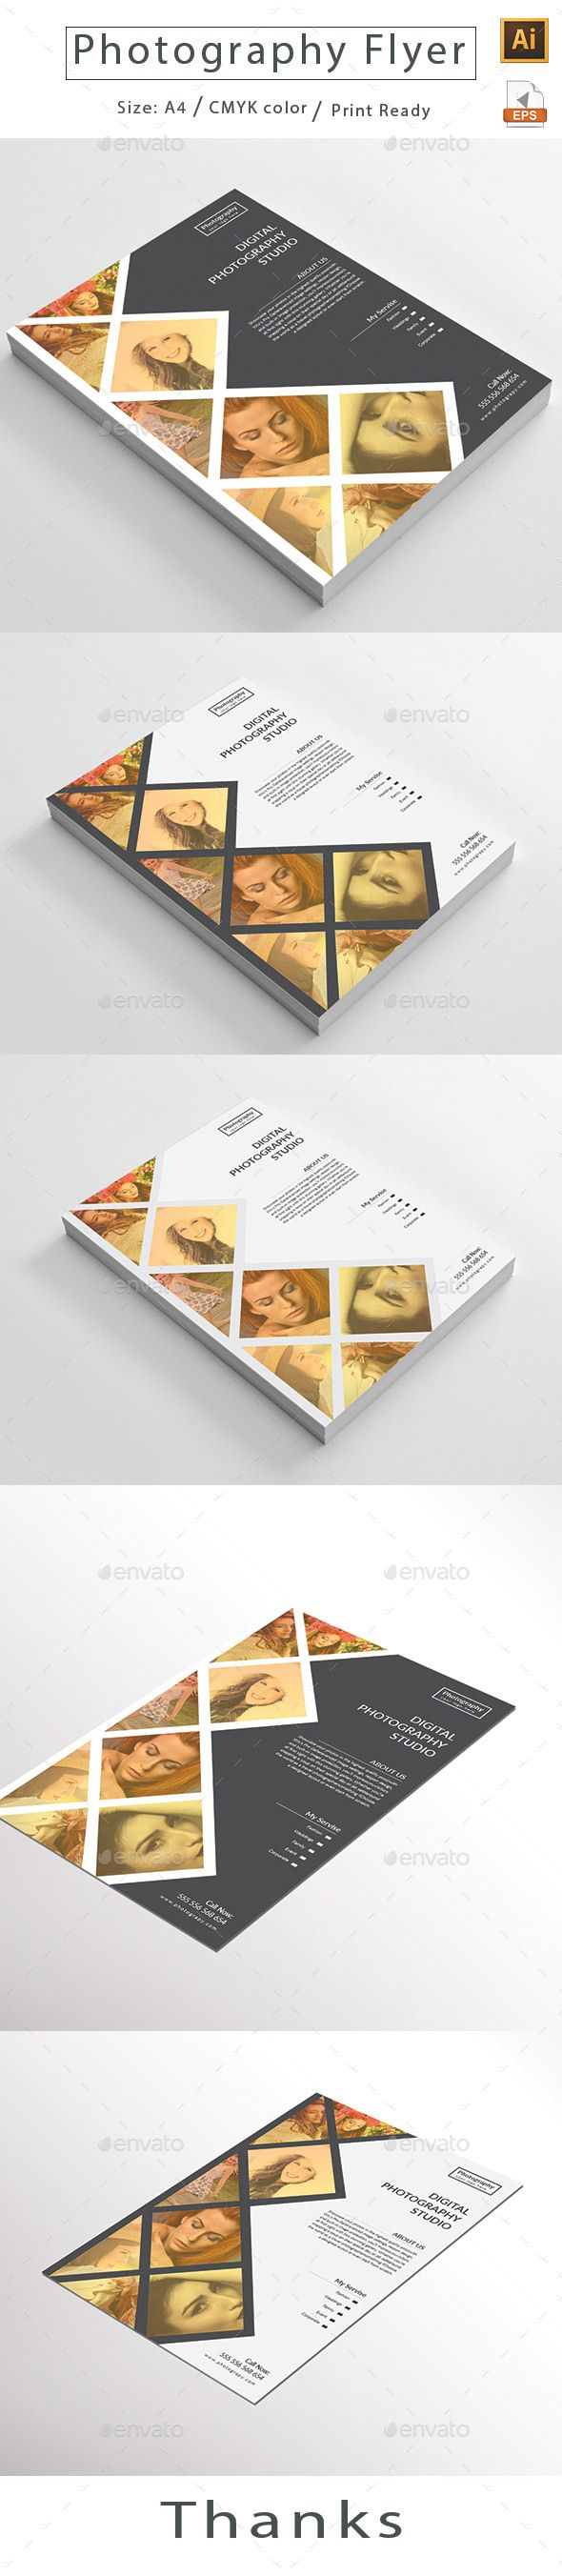 Photography Flyer | Photography flyer, Ai illustrator and Flyer template